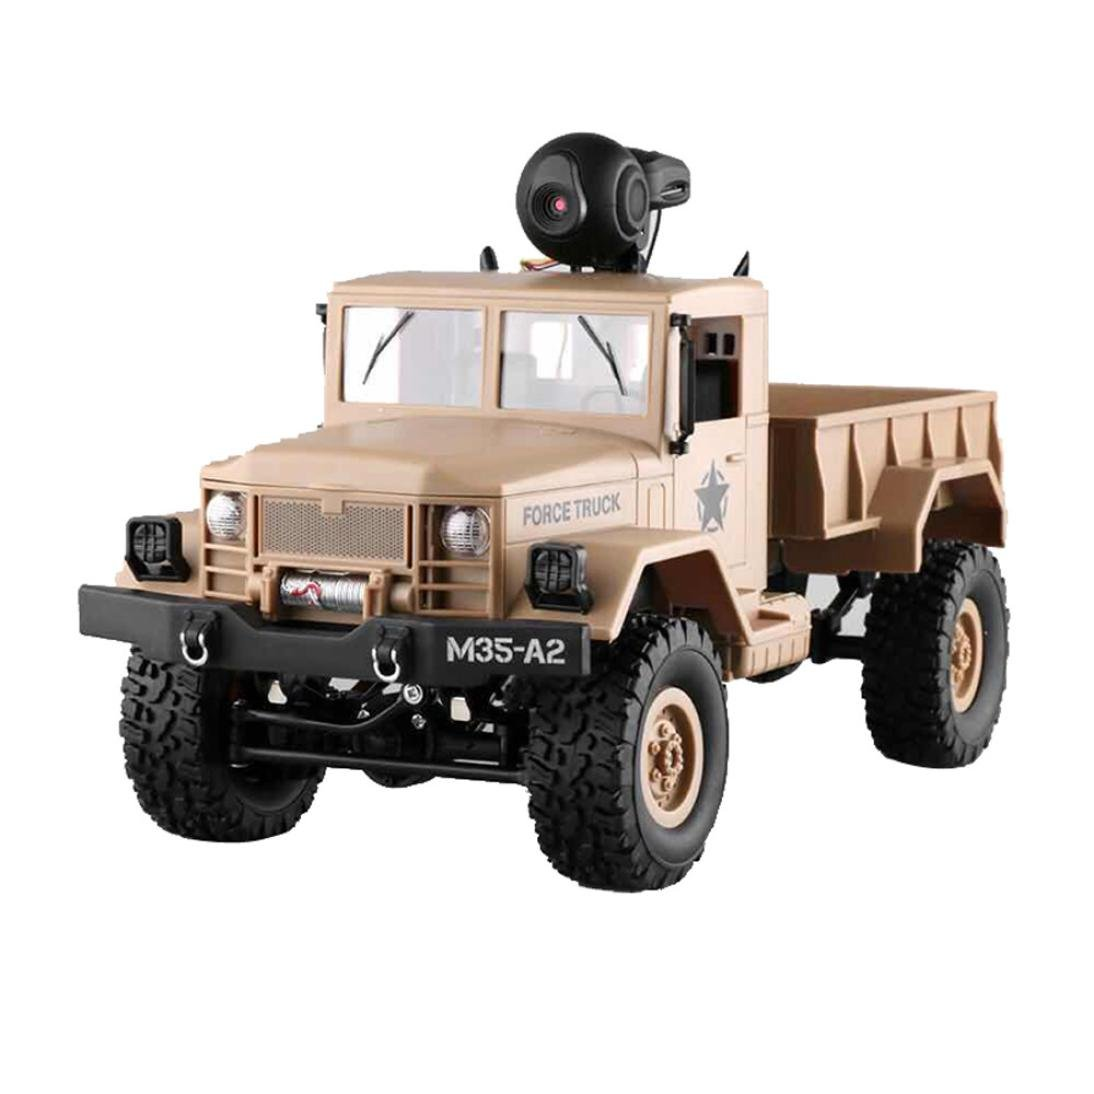 Vovomay RC Military Truck Army With WIFI 720P Camera 1:16 4WD Off-Road Car RTR APP Control (YELLOW)